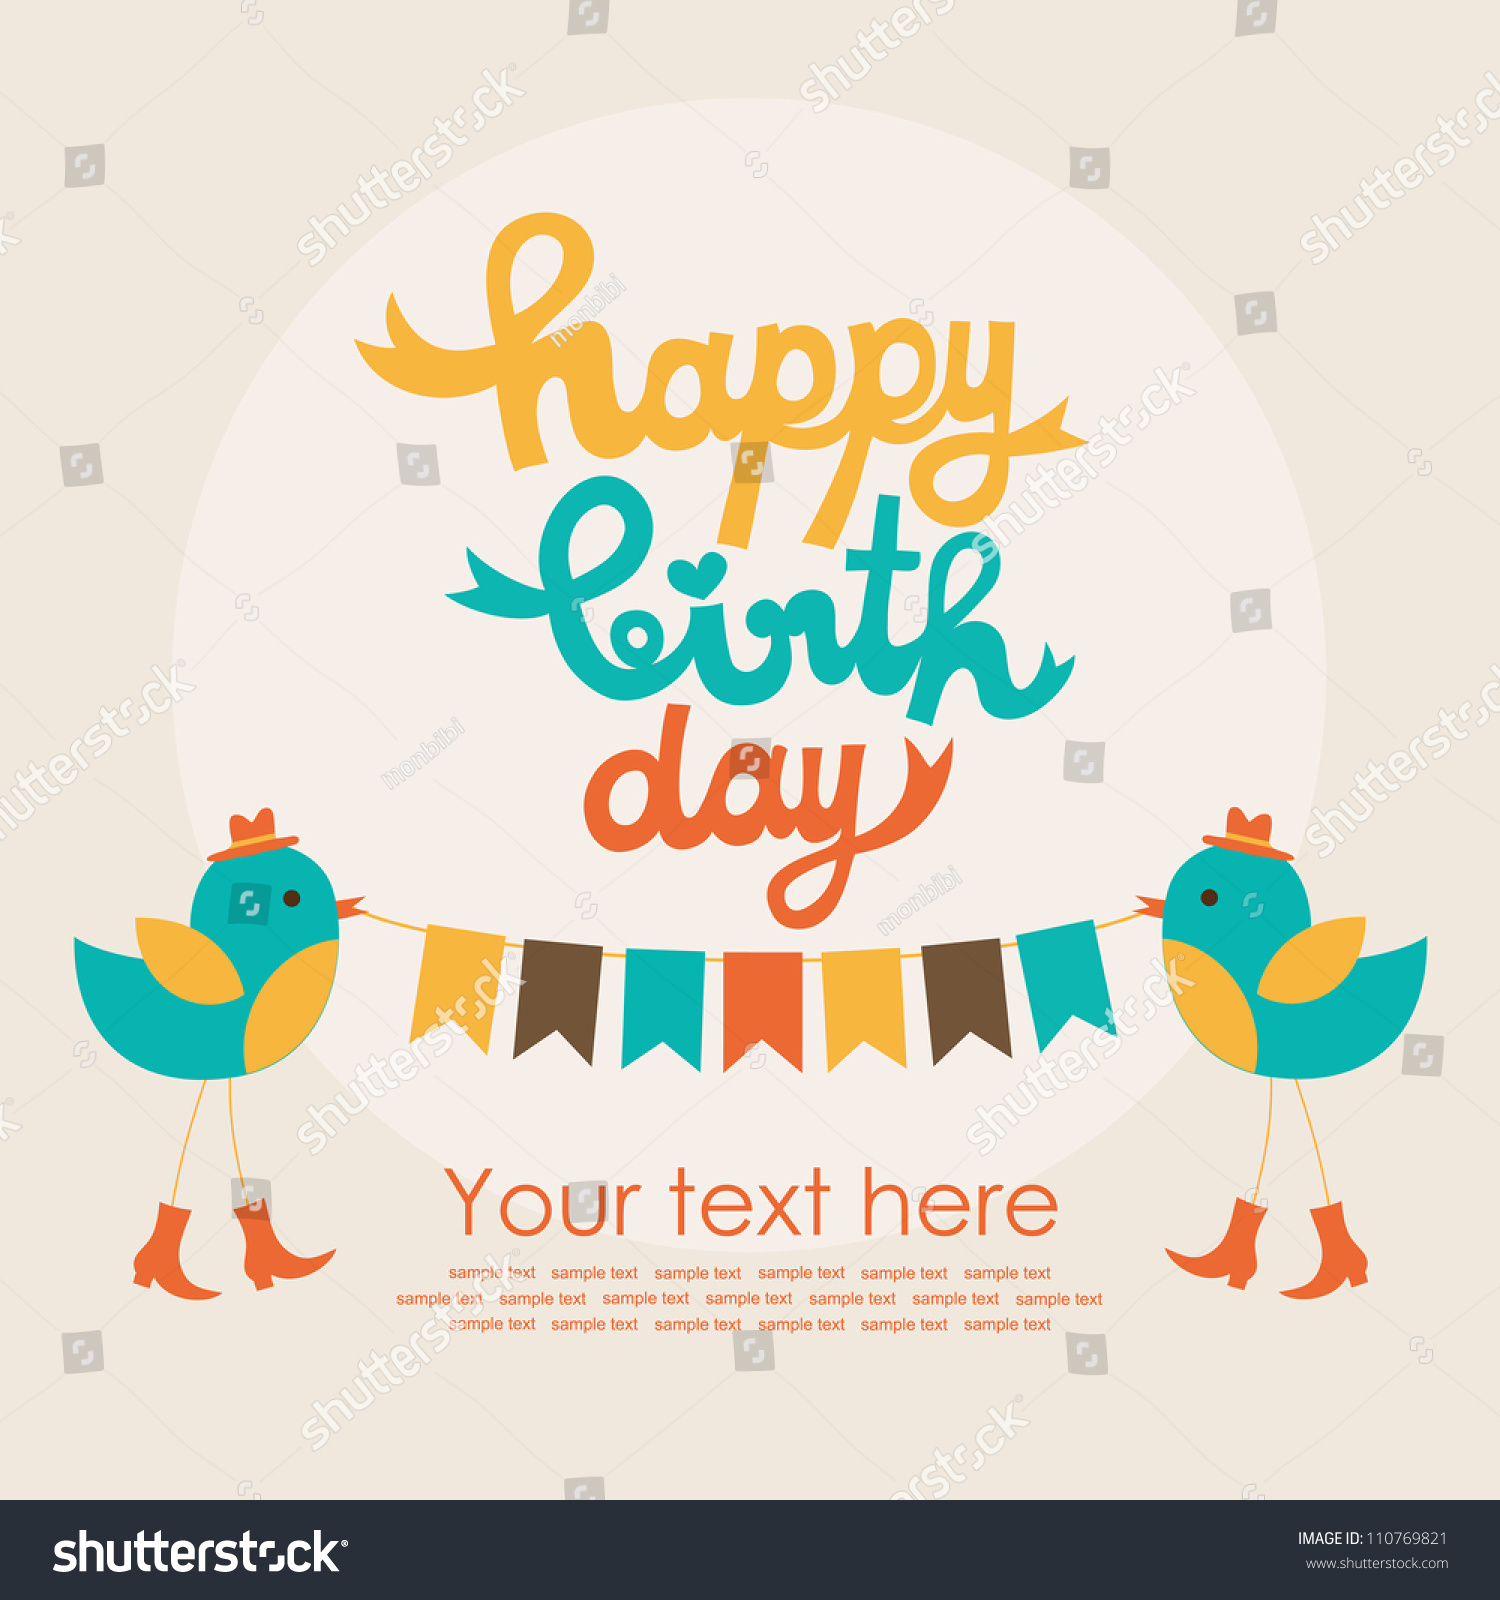 birthday card design images ; stock-vector-happy-birthday-card-design-vector-illustration-110769821